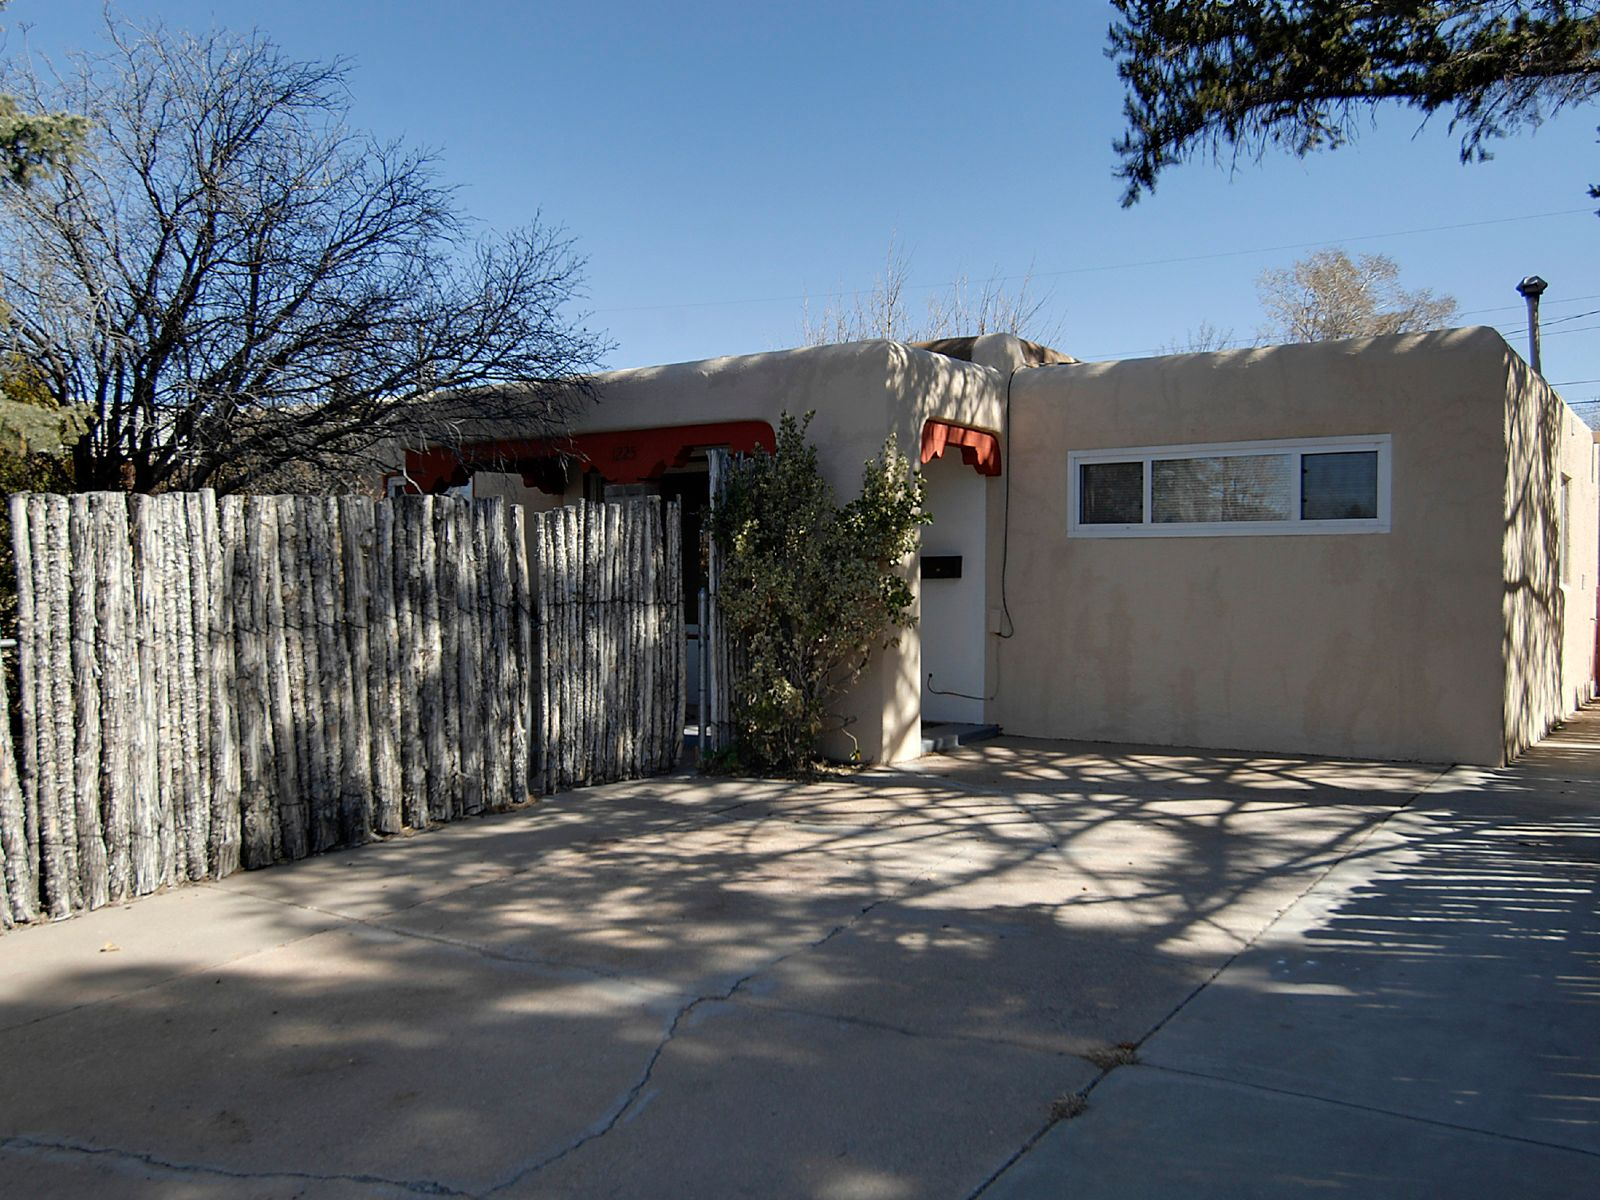 1225 Vitalia Street, Santa Fe NM Single Family Home - Santa Fe Real Estate